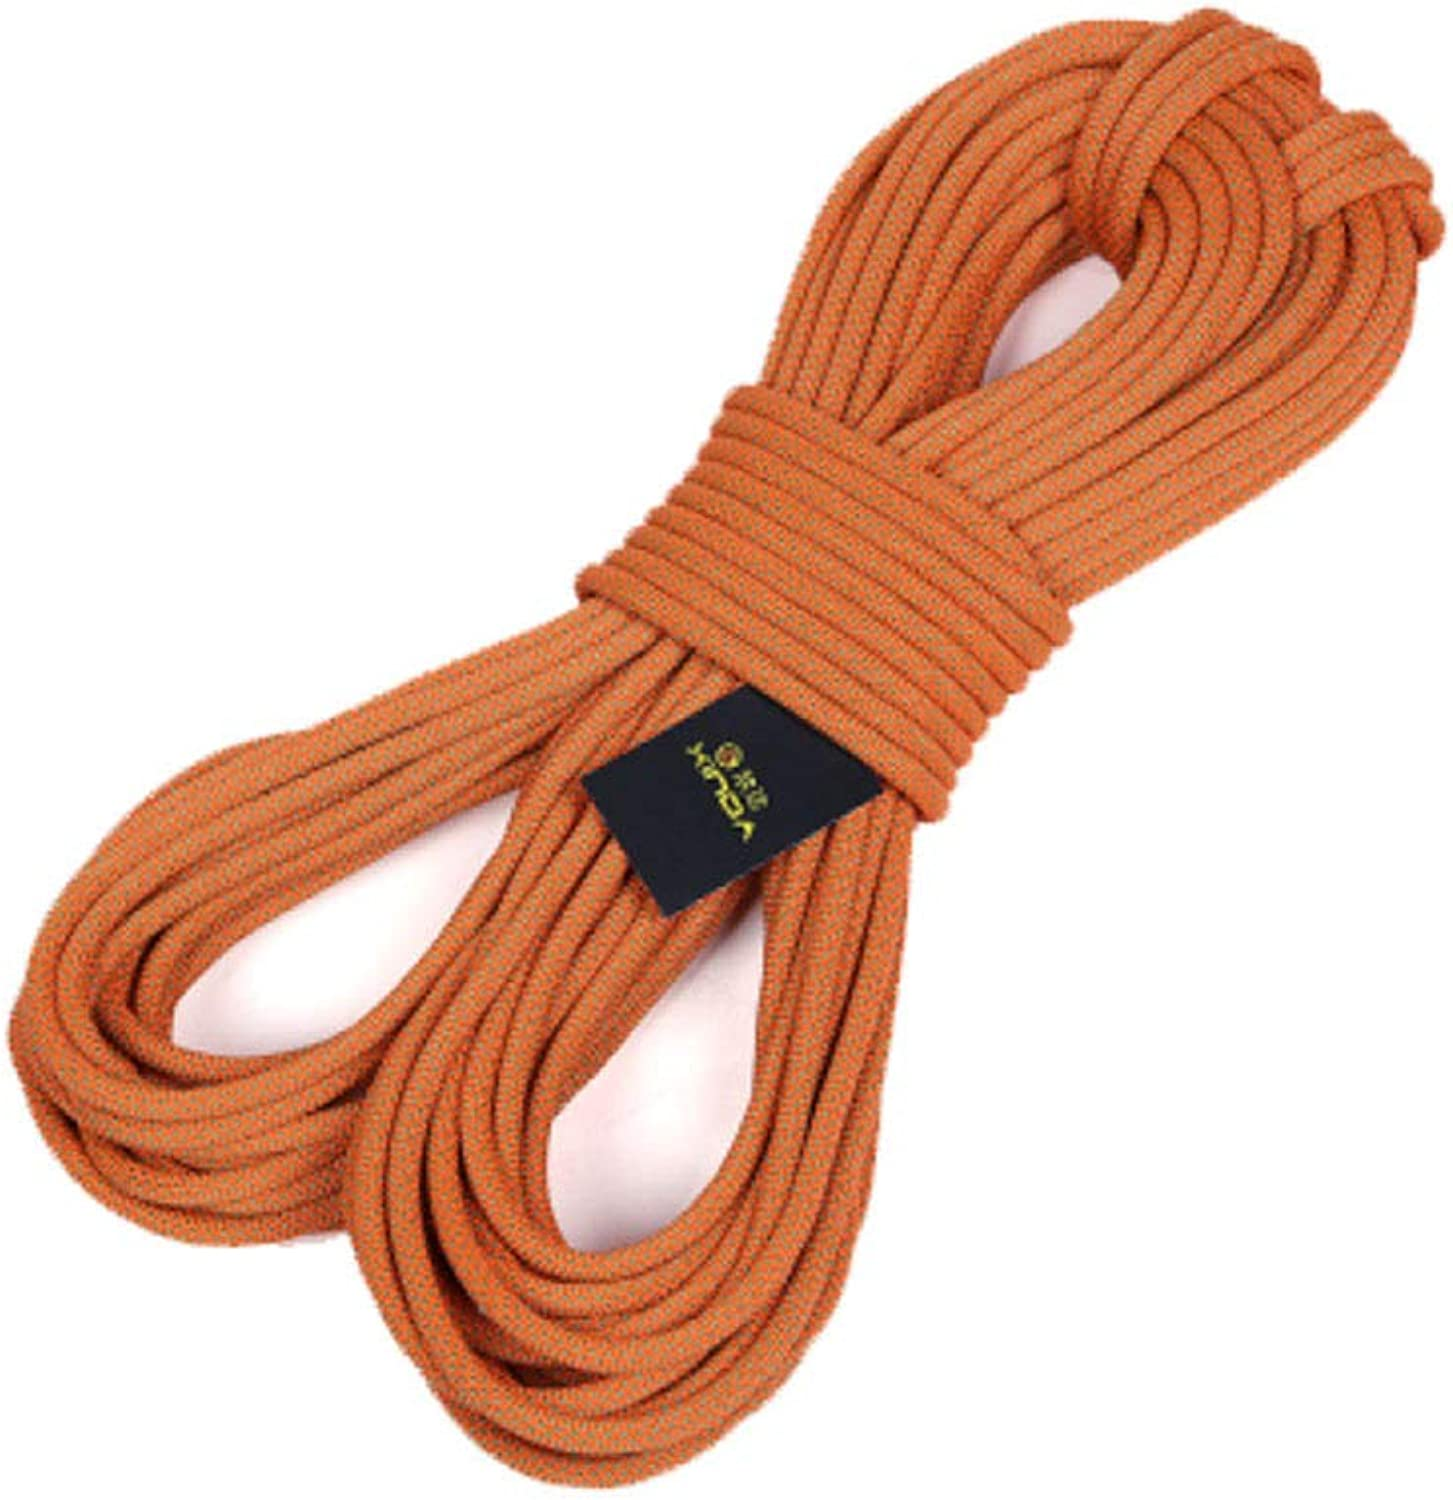 10MM Outdoor Mountaineering Adventure Camping Safety Rescue Rope,orange20m10mm